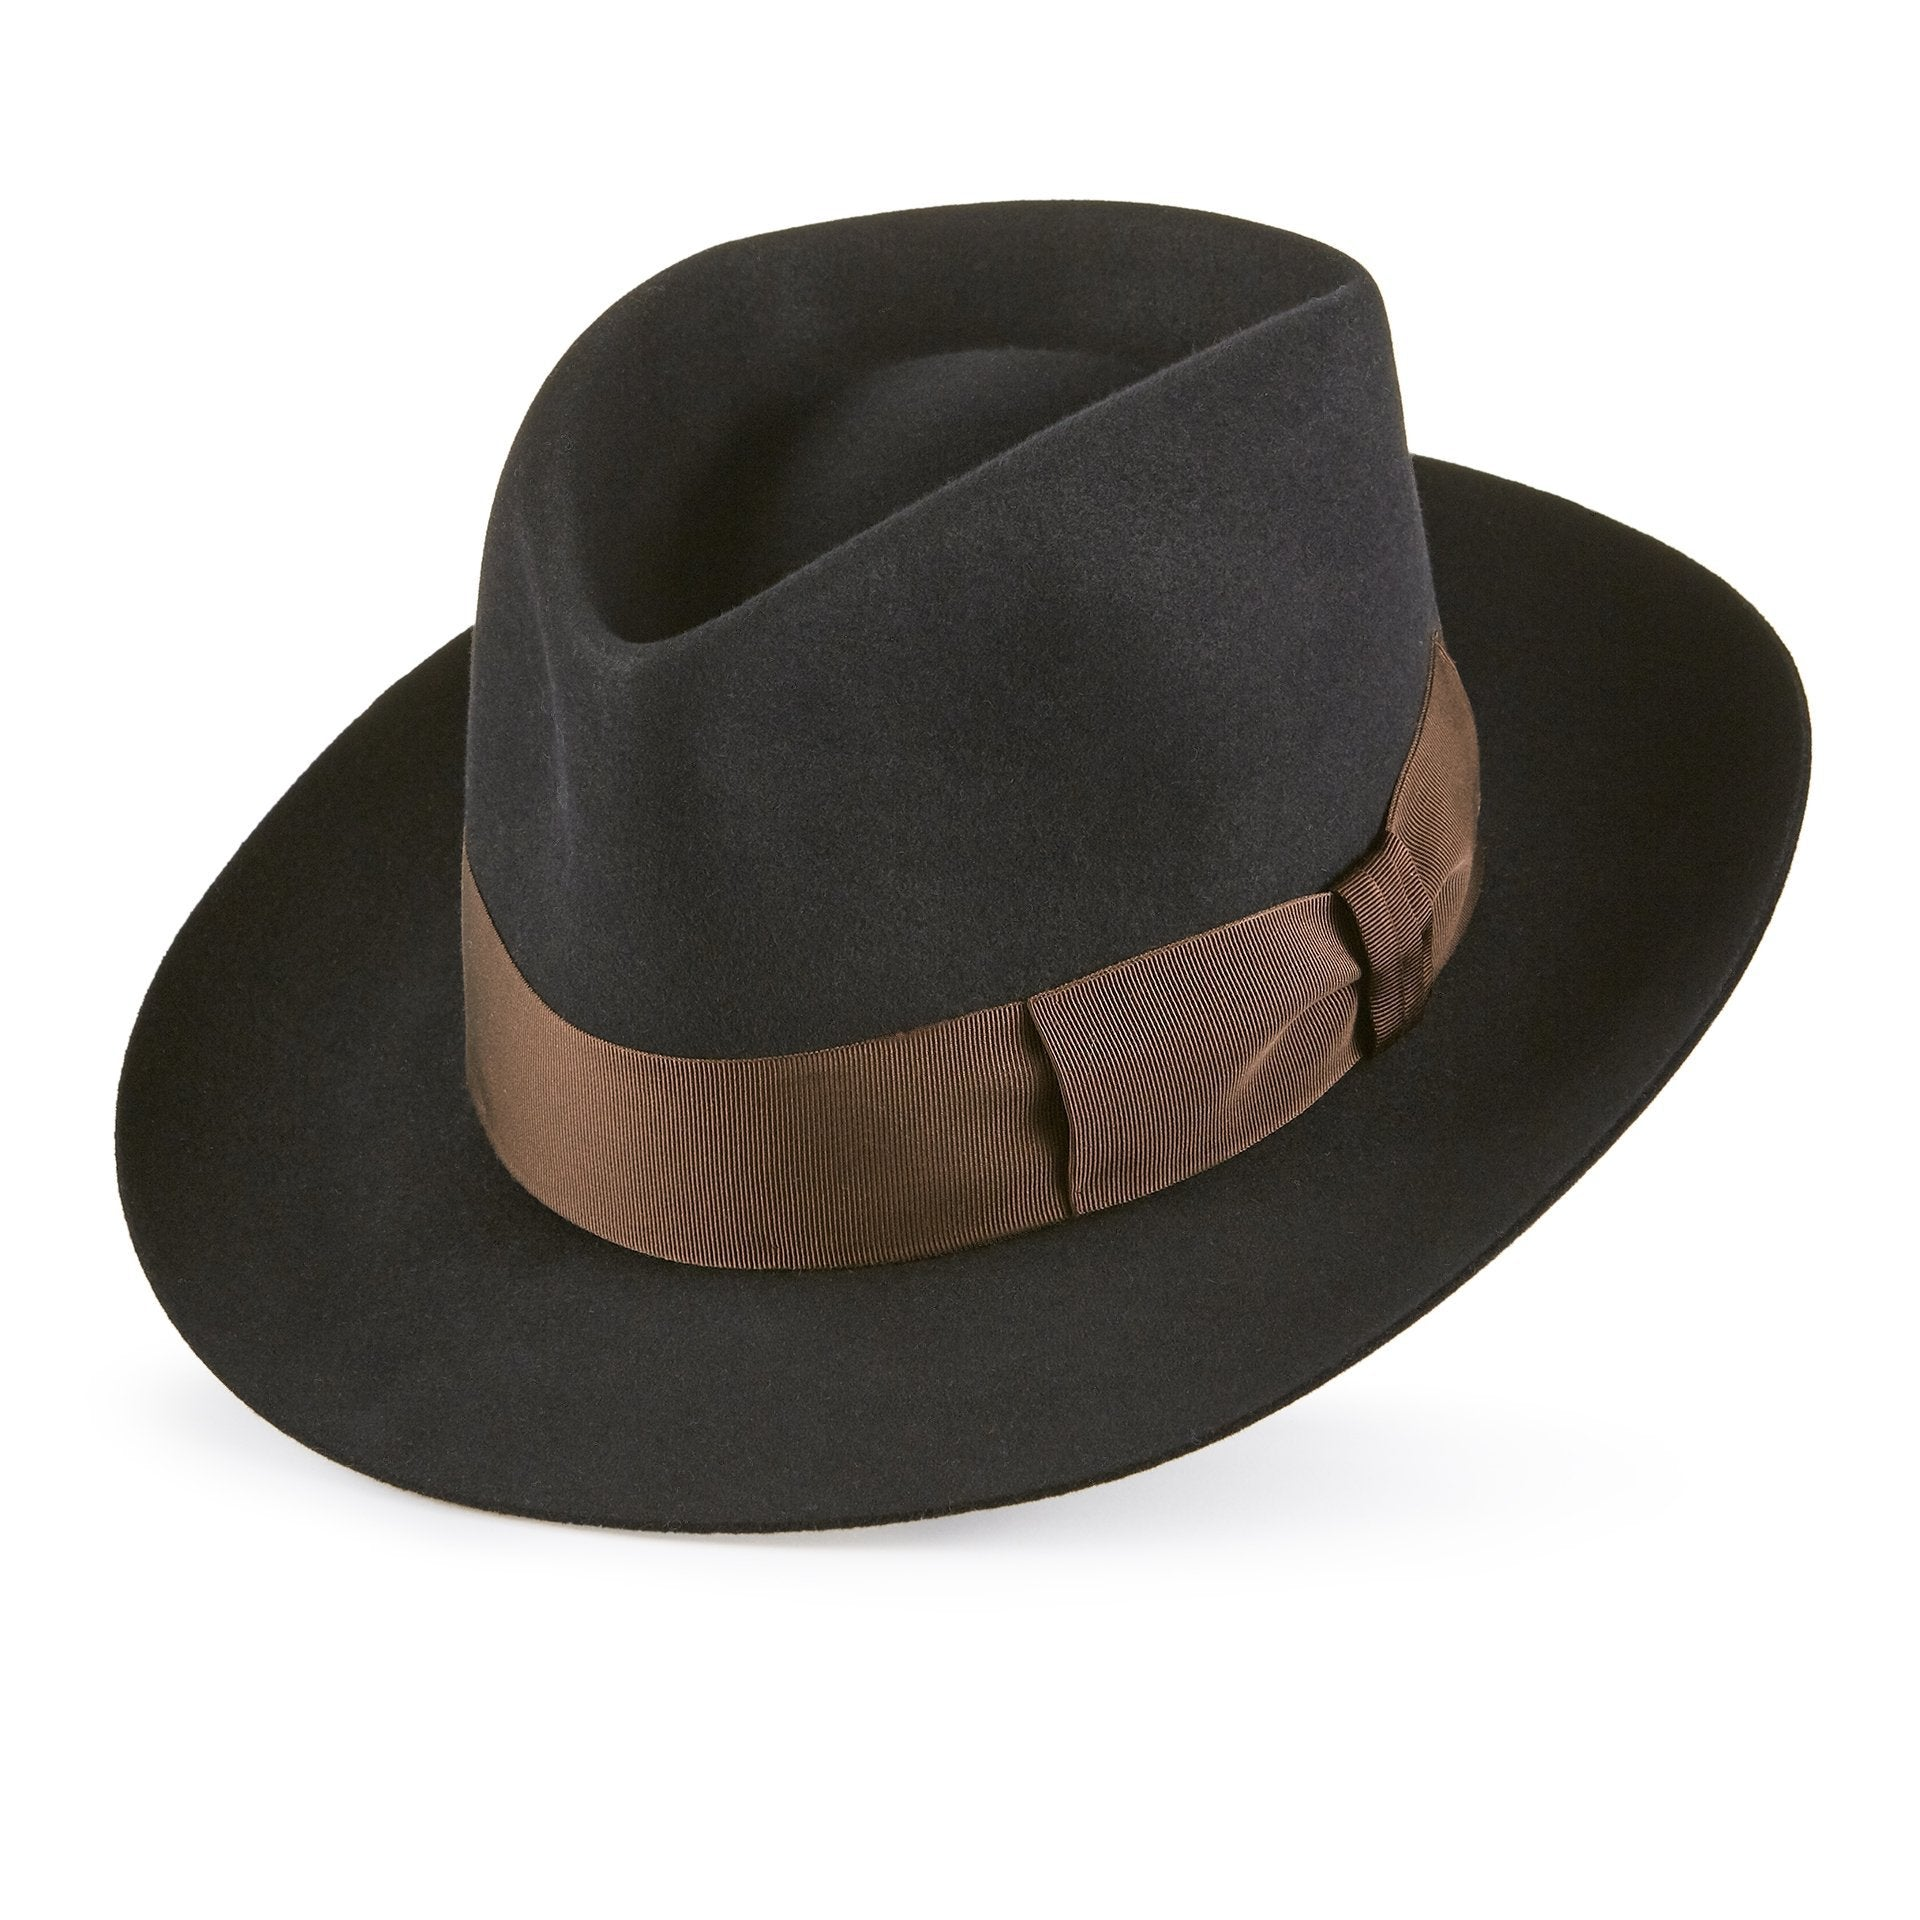 Stratton fedora - Fedoras & homburgs - Lock & Co. Hatters London UK